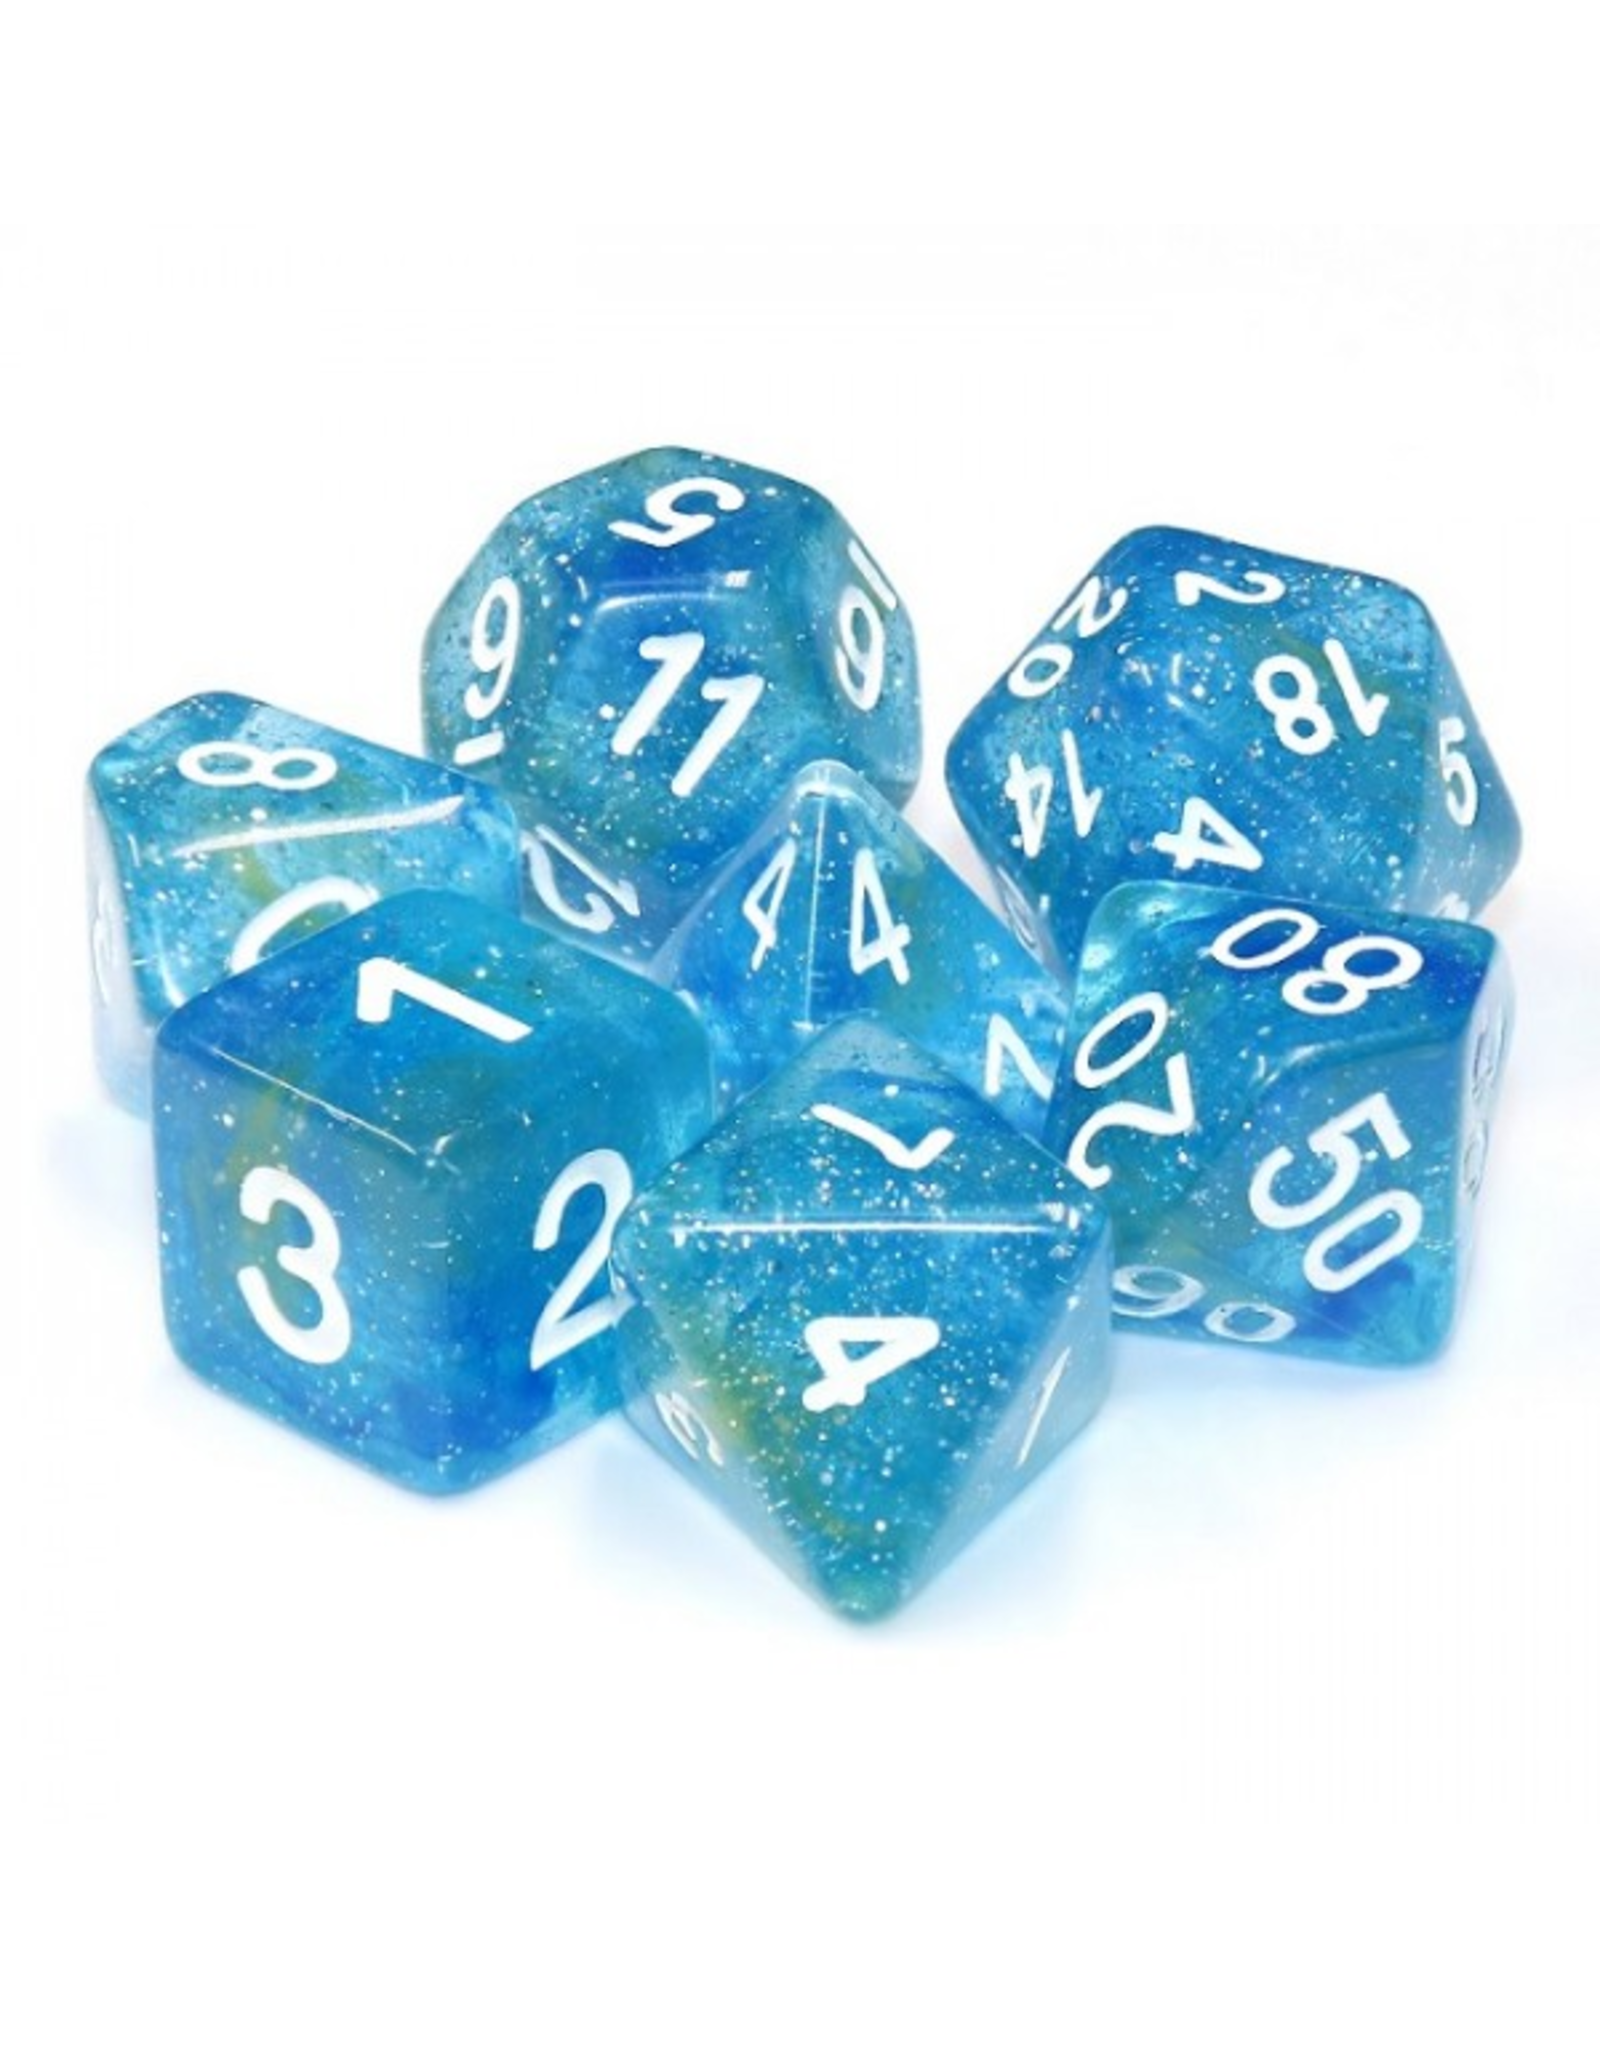 HD Dice Dice: 7-Set Galaxy Blue Yellow with White Numbers (HD)